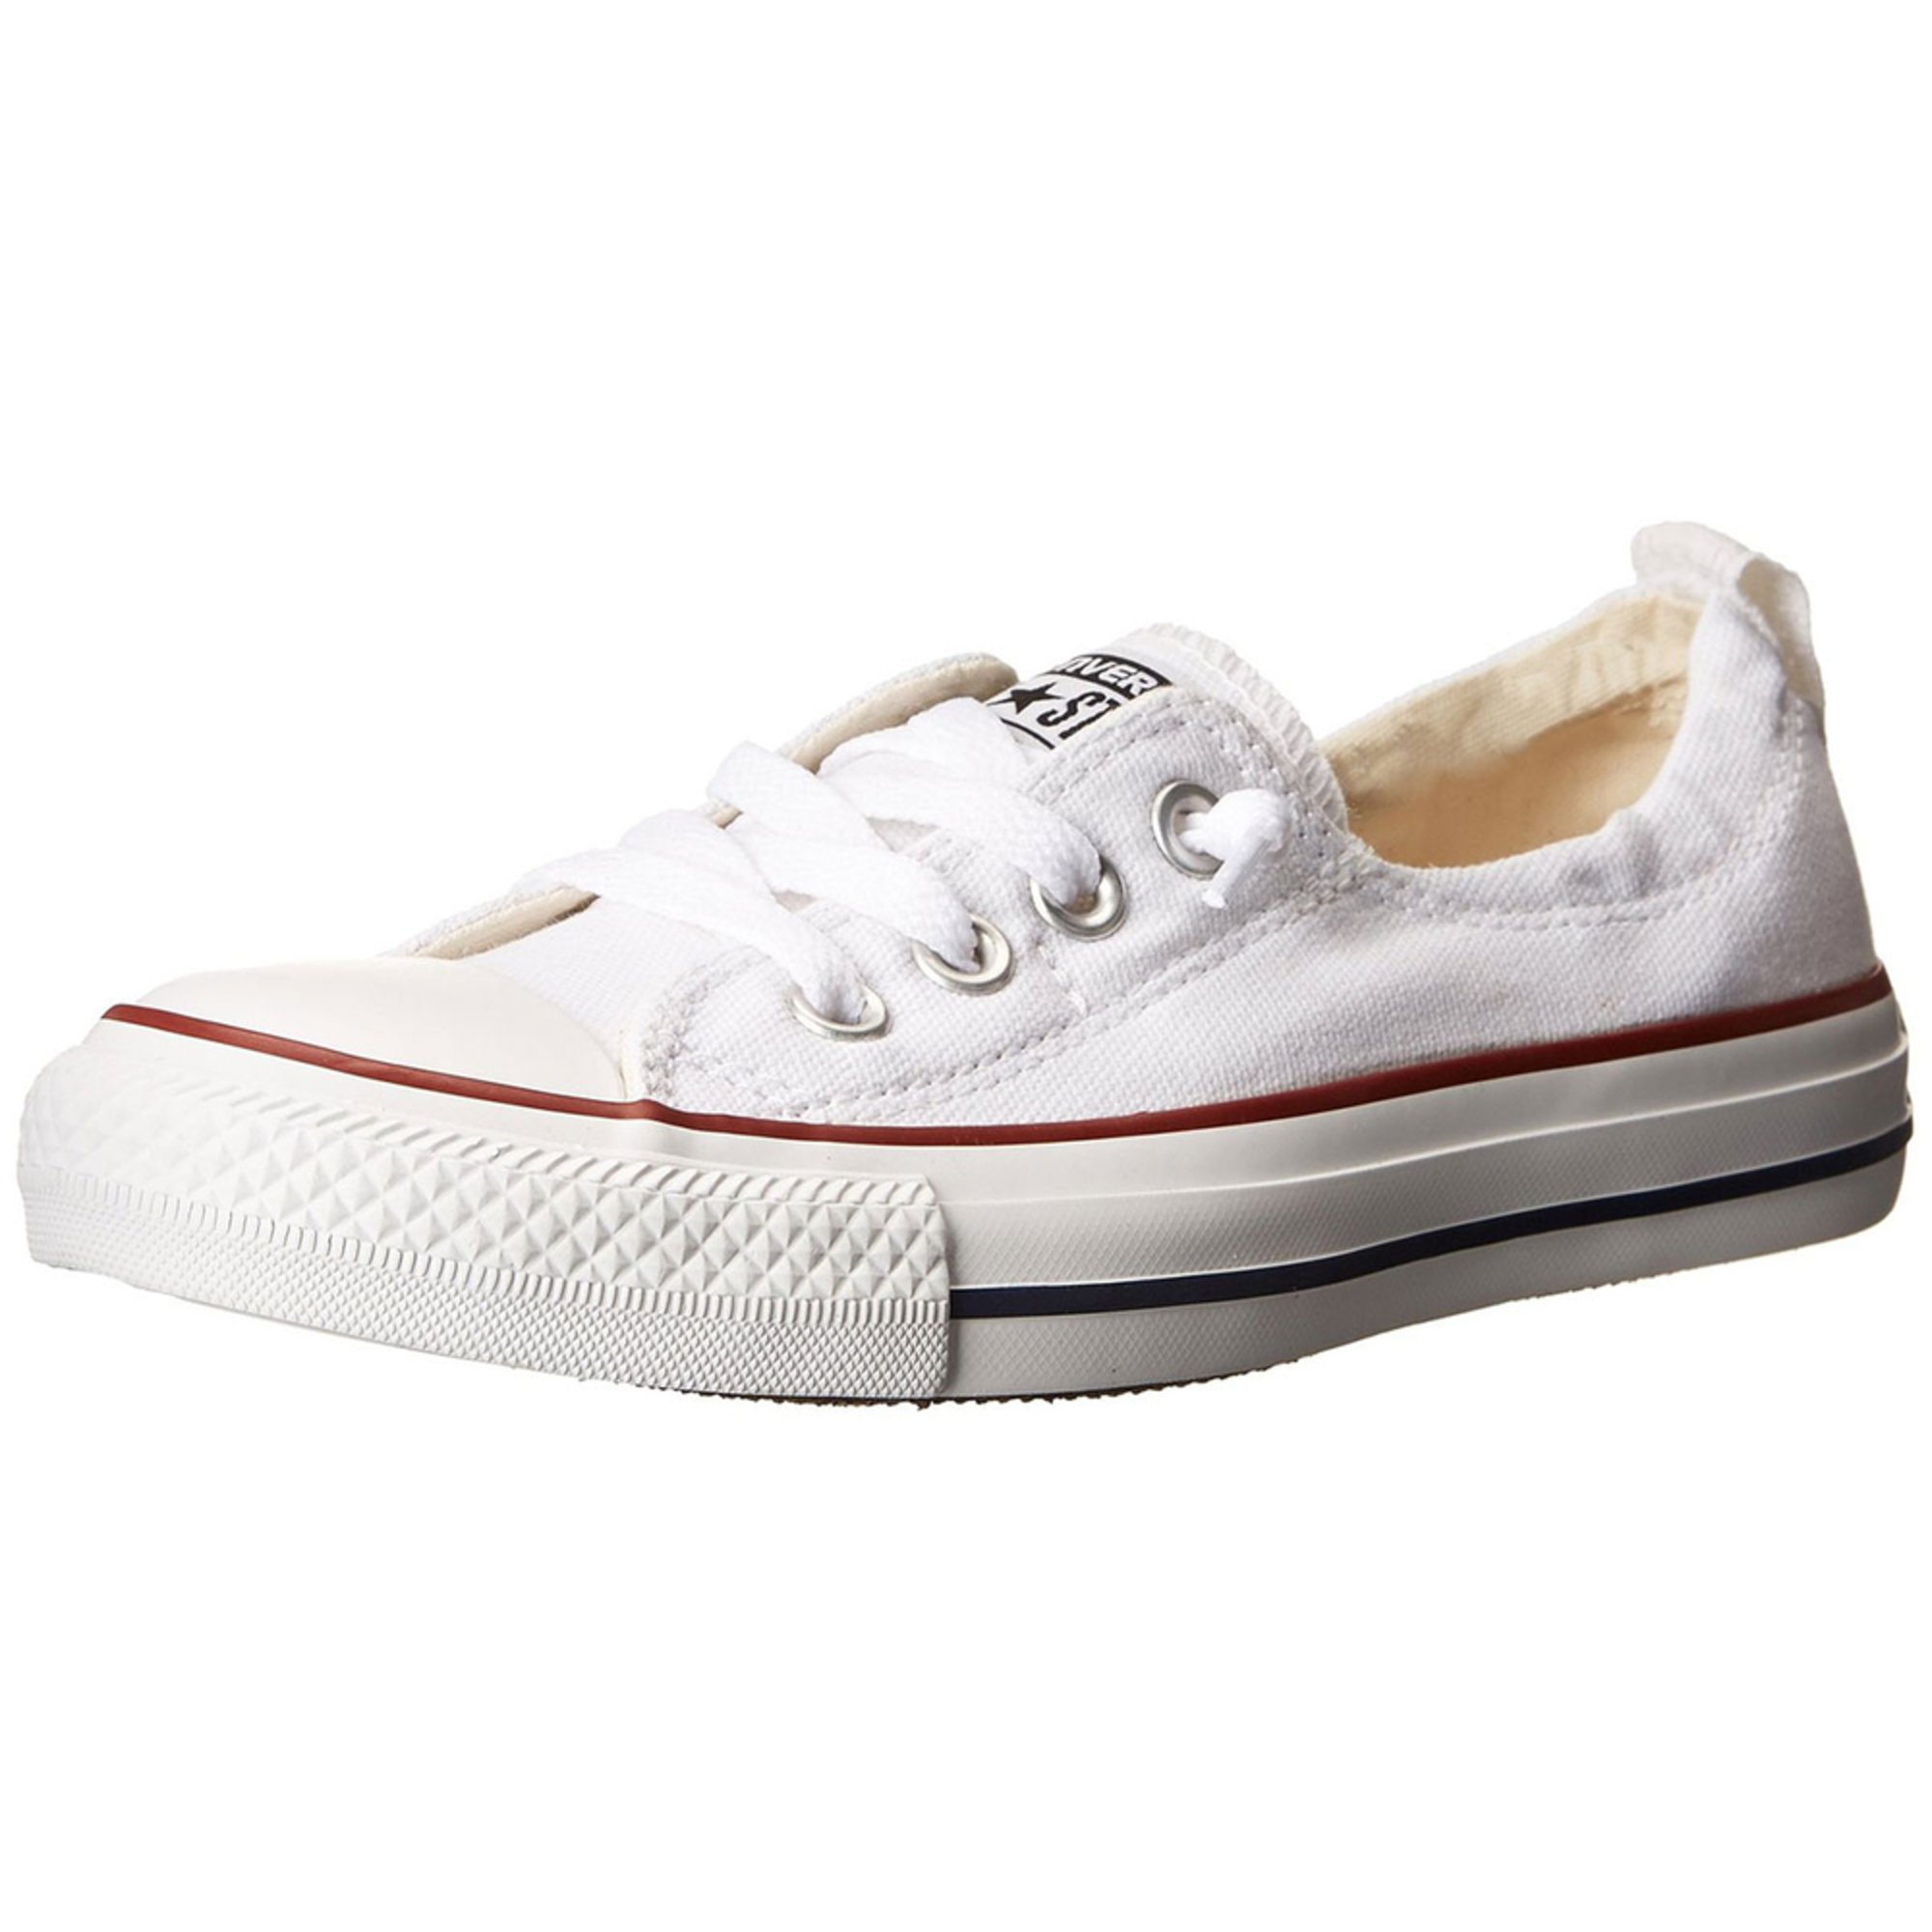 d62871755d11 Converse Women s Chuck Taylor All Star Shoreline Sneaker